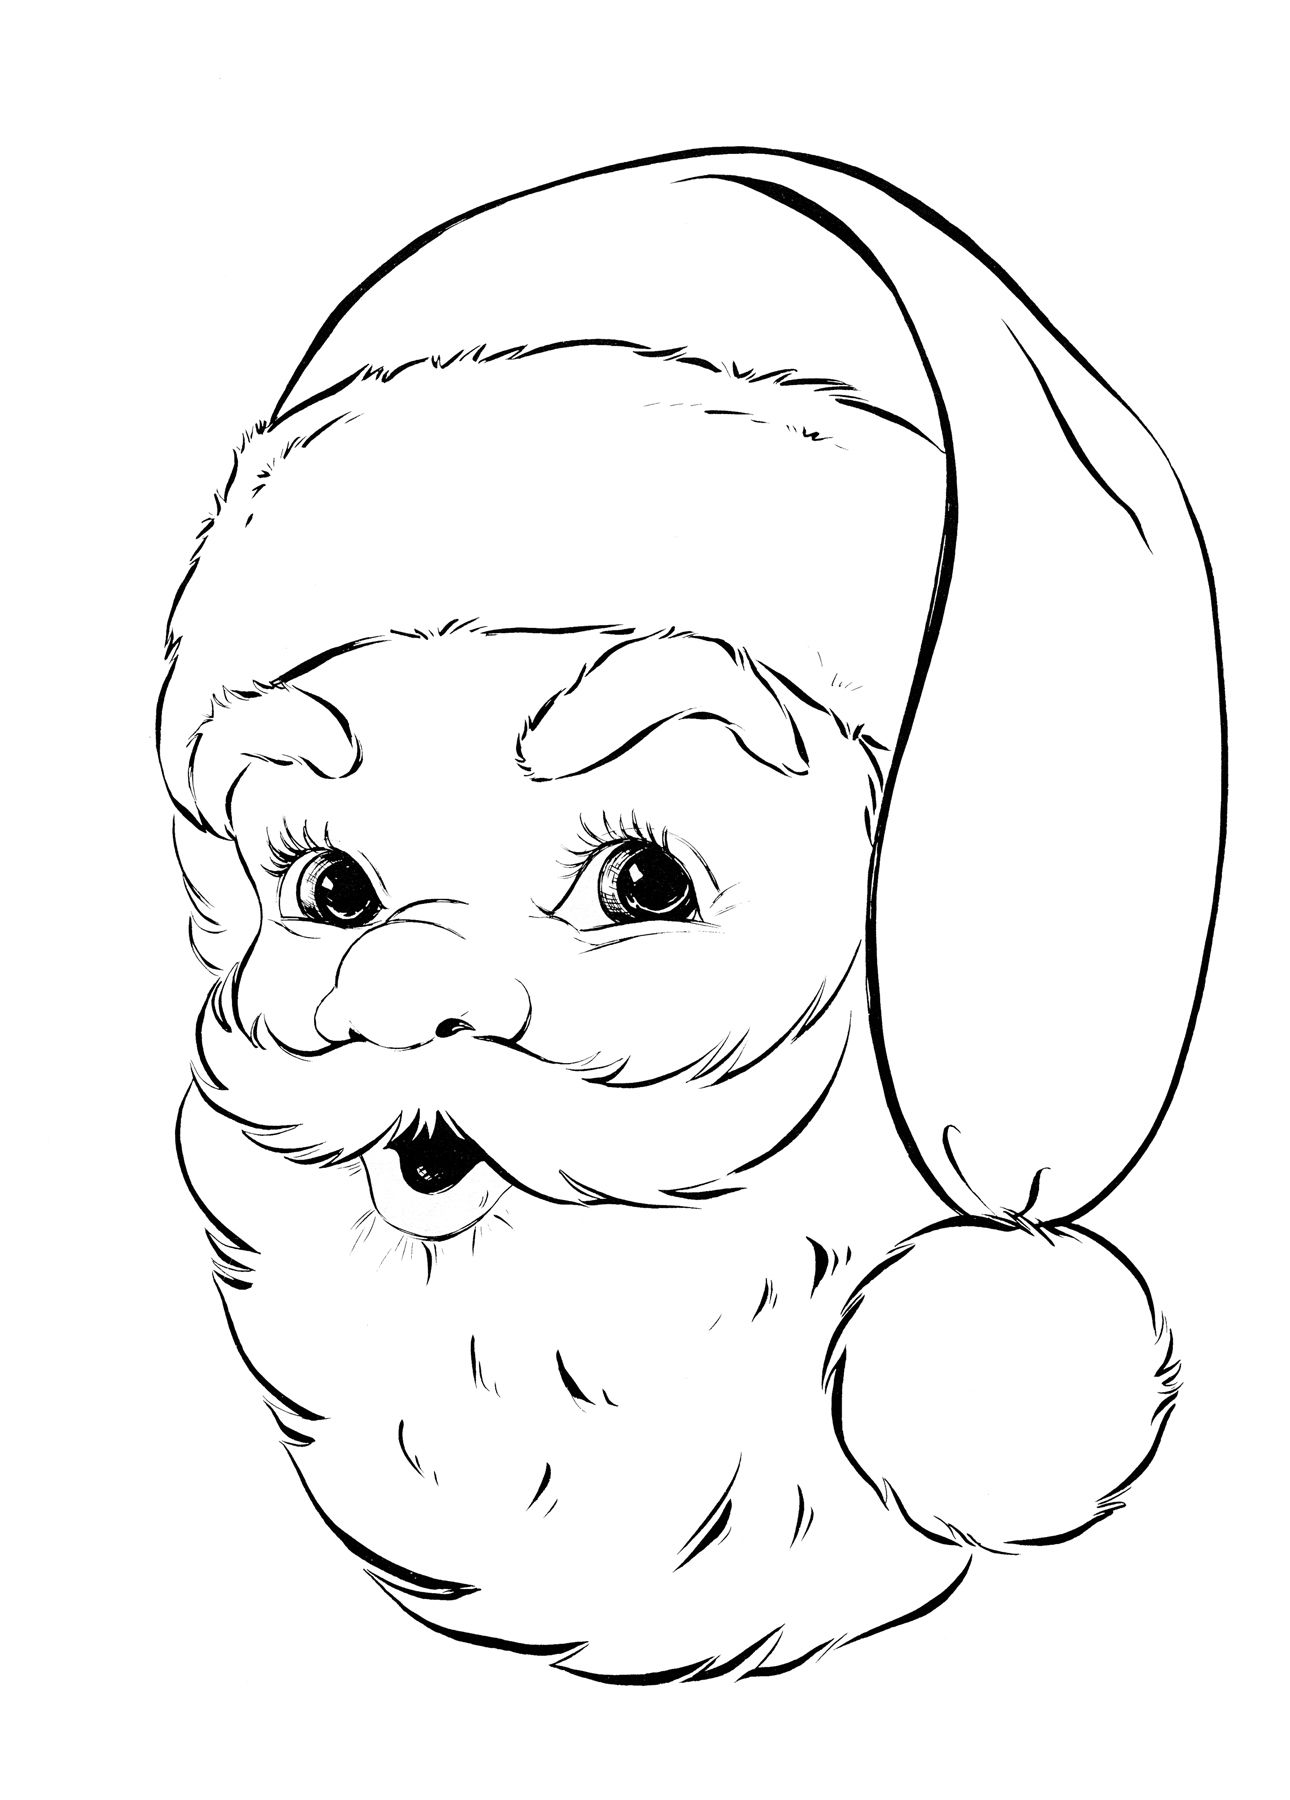 star face santa 34 retro santa coloring page this 1950s image of santas face